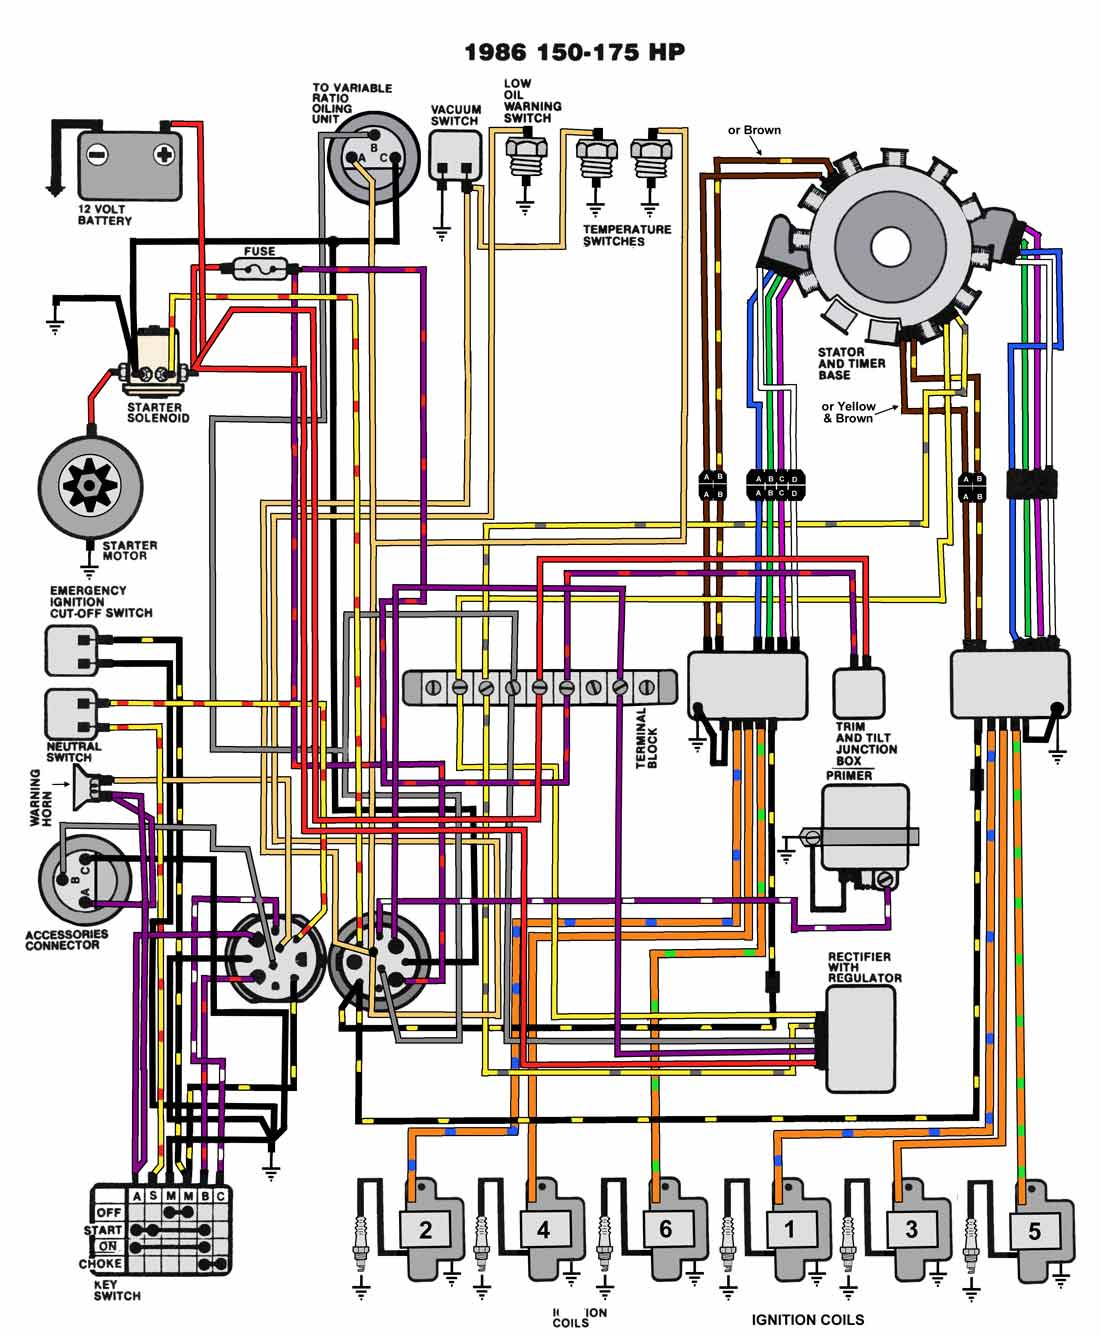 89 Omc 4 3 Wiring Diagram Not Lossing Library Rh 74 Kandelhof Restaurant De Evinrude Harness